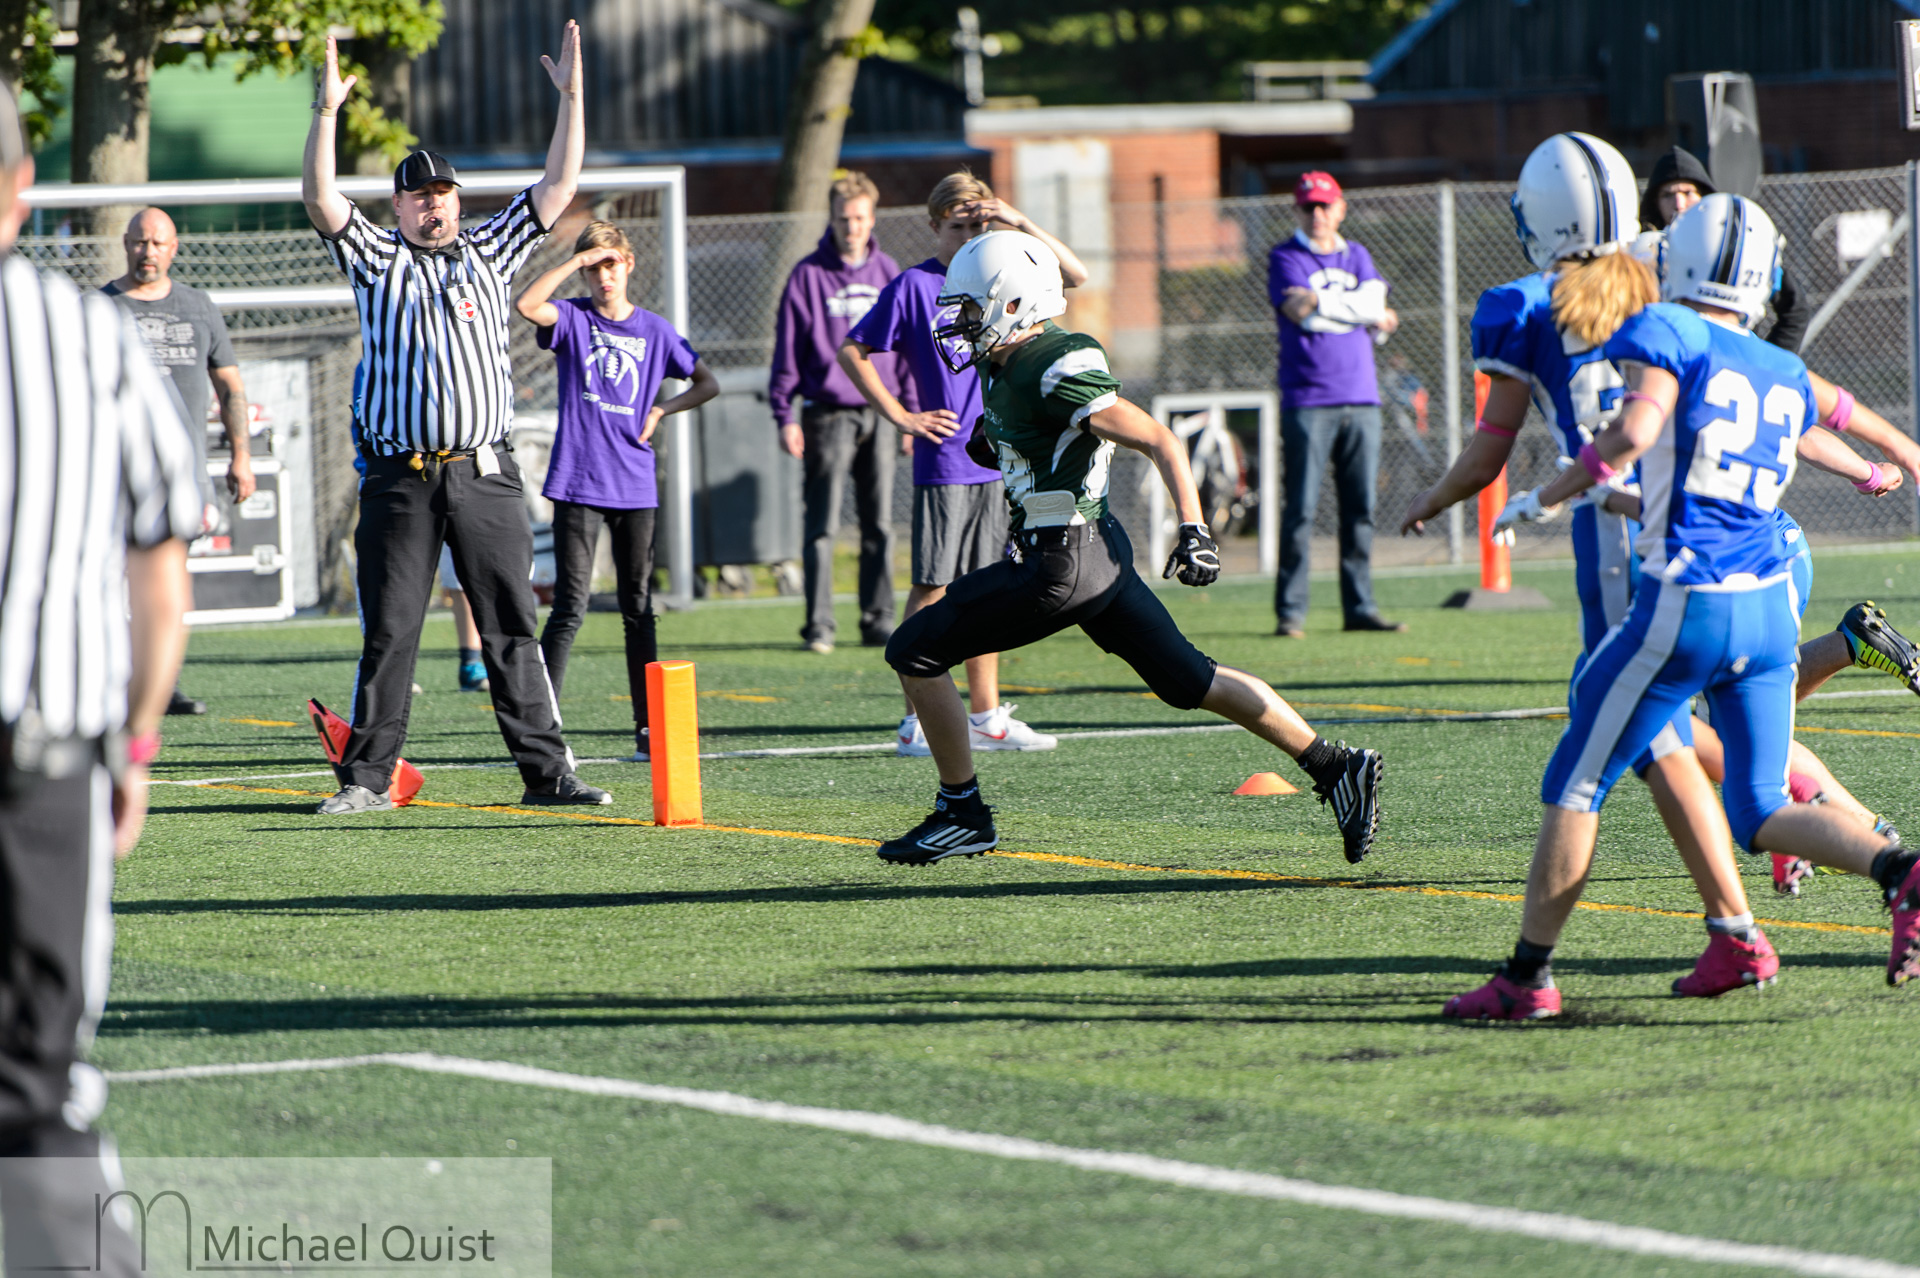 U16-RS-Bowl-2015-Ørestaden-Spartans-vs-Slagelse-Wolfpack-43